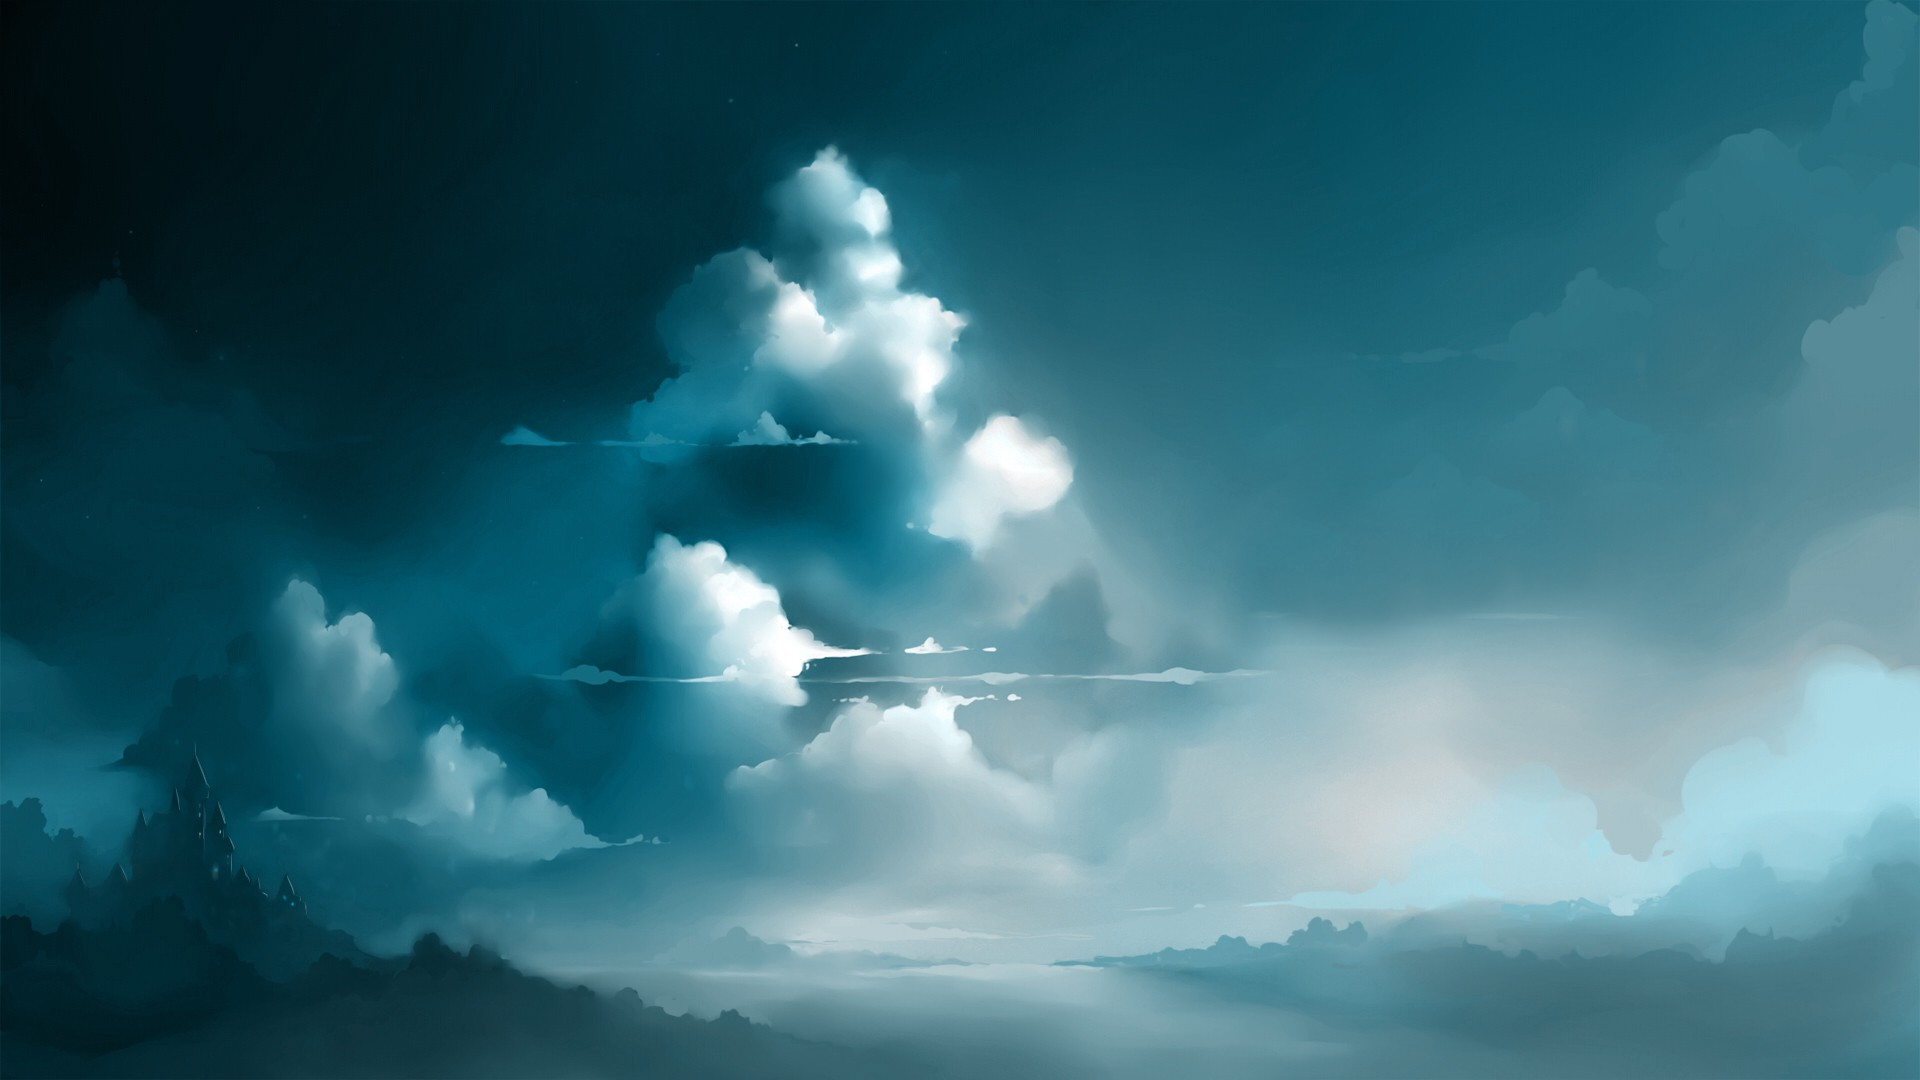 Fantasy clouds background images wallpaper Fantasy HD Wallpaper 1920x1080 px